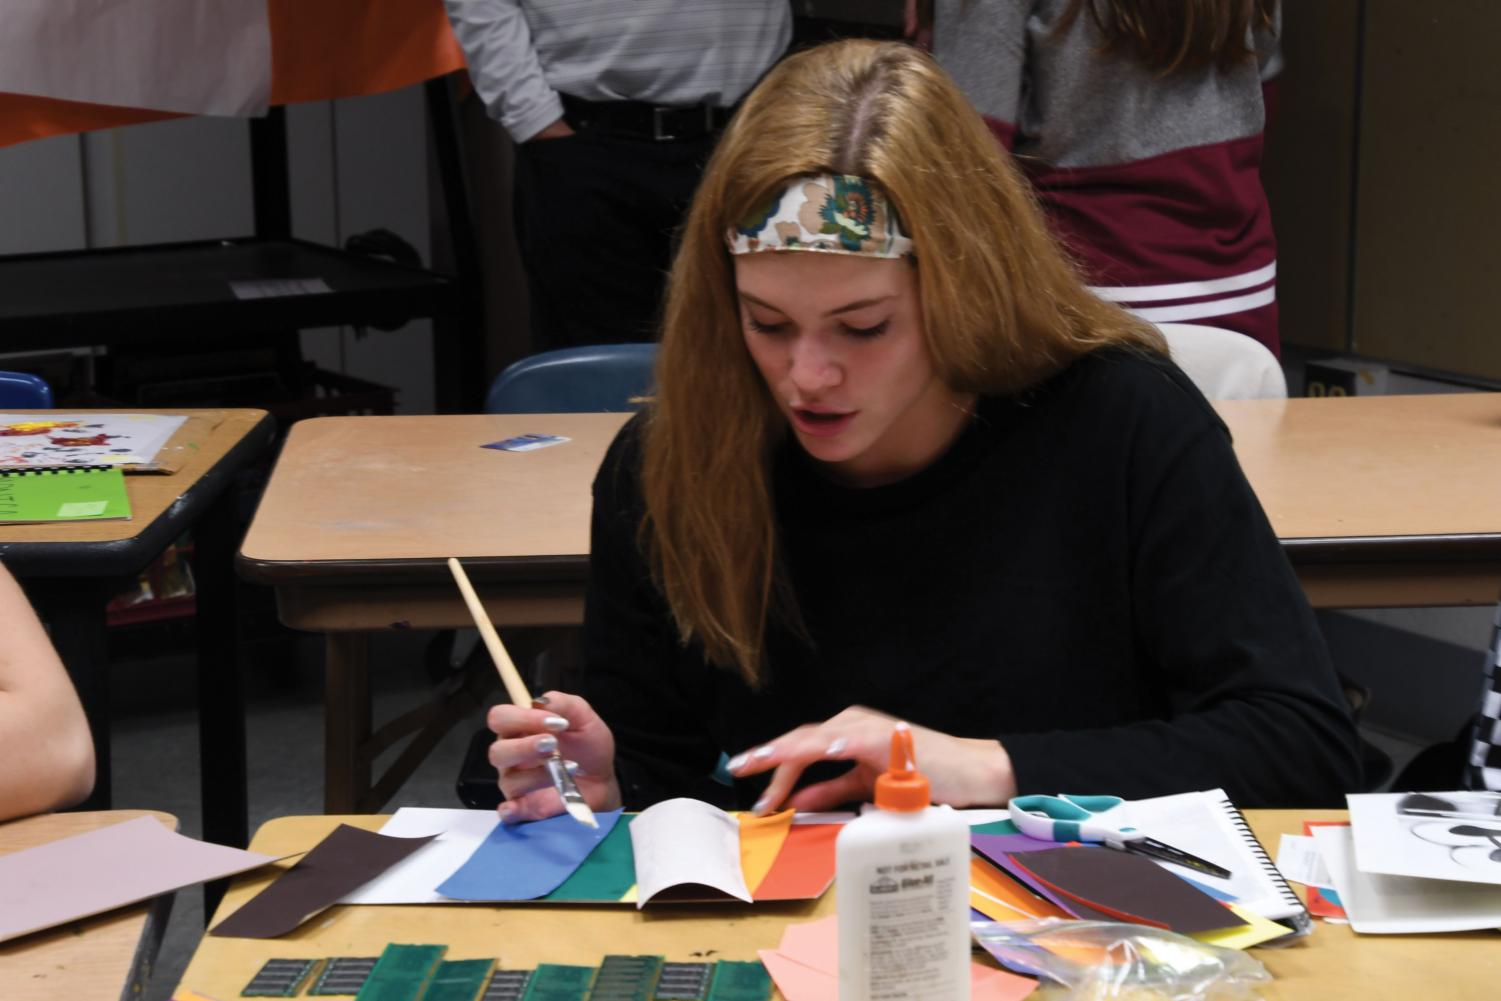 Junior Hattie Kugler glues different colored swatches together to make a collage during her fifth hour mixed media arts on Oct. 3. She is making this project for the invitation to the BARR 20th anniversary in April.